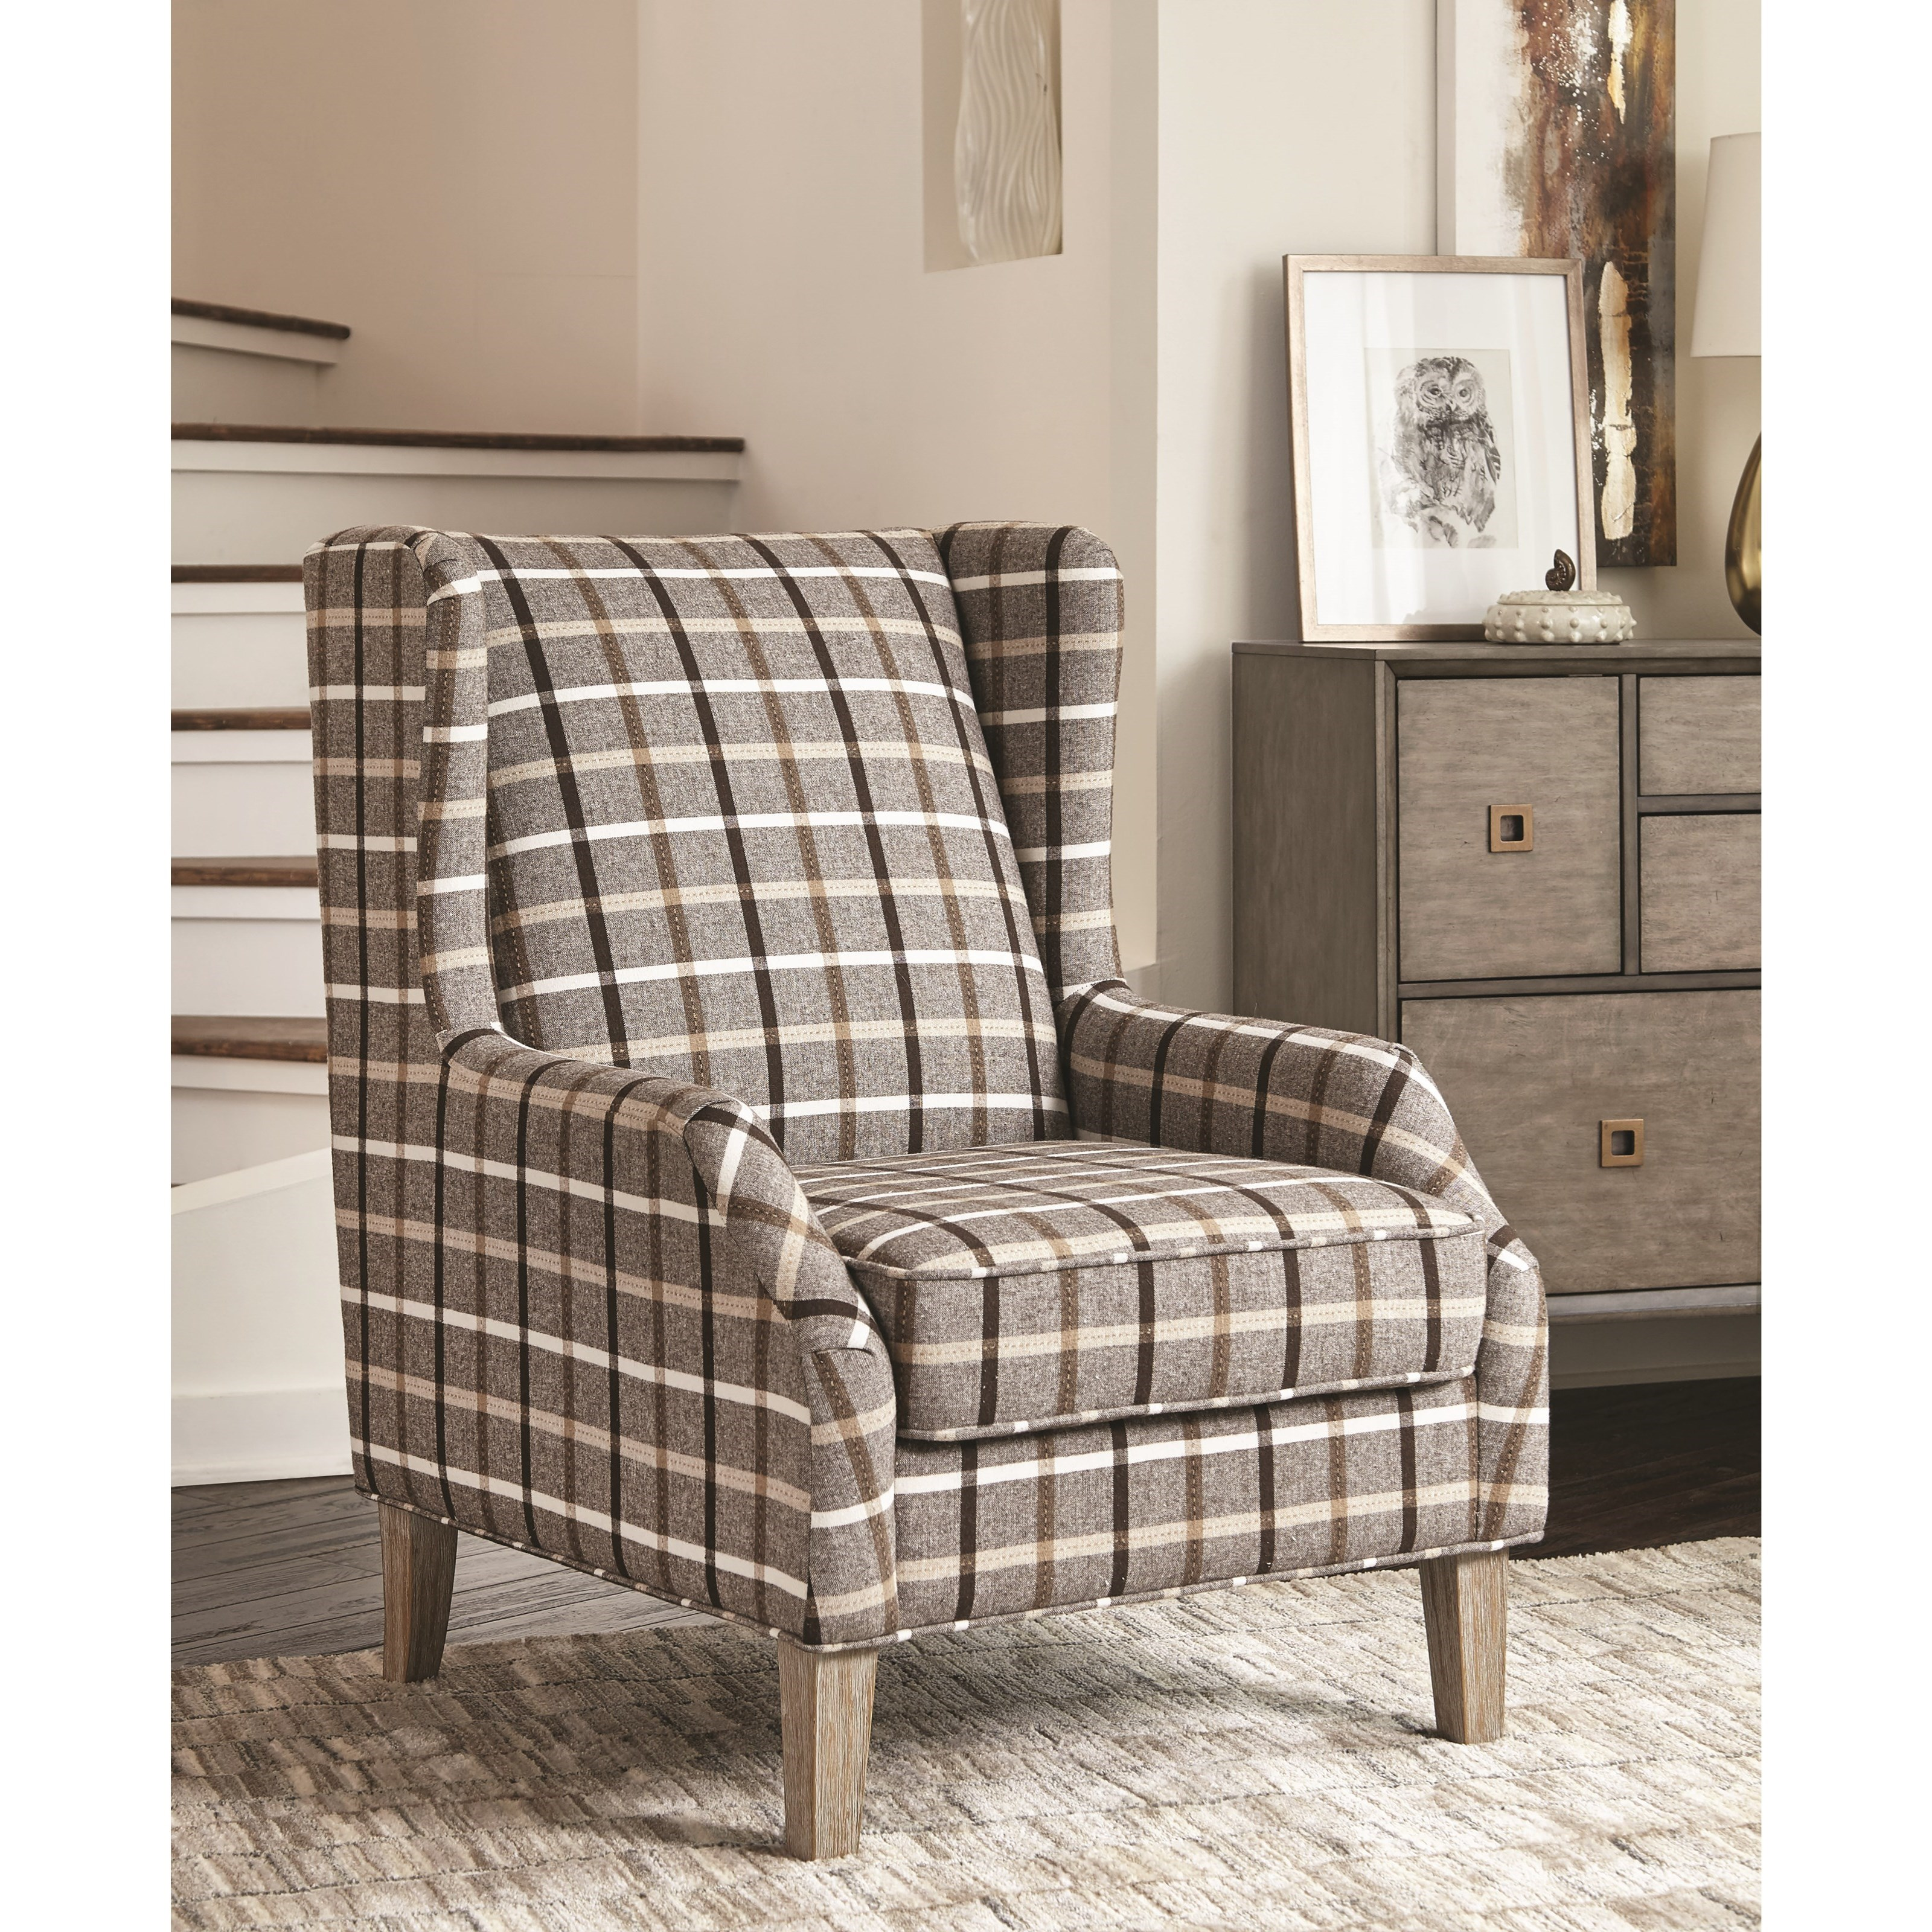 Superbe 904052 Upholstered Wingback Chair With Plaid Design